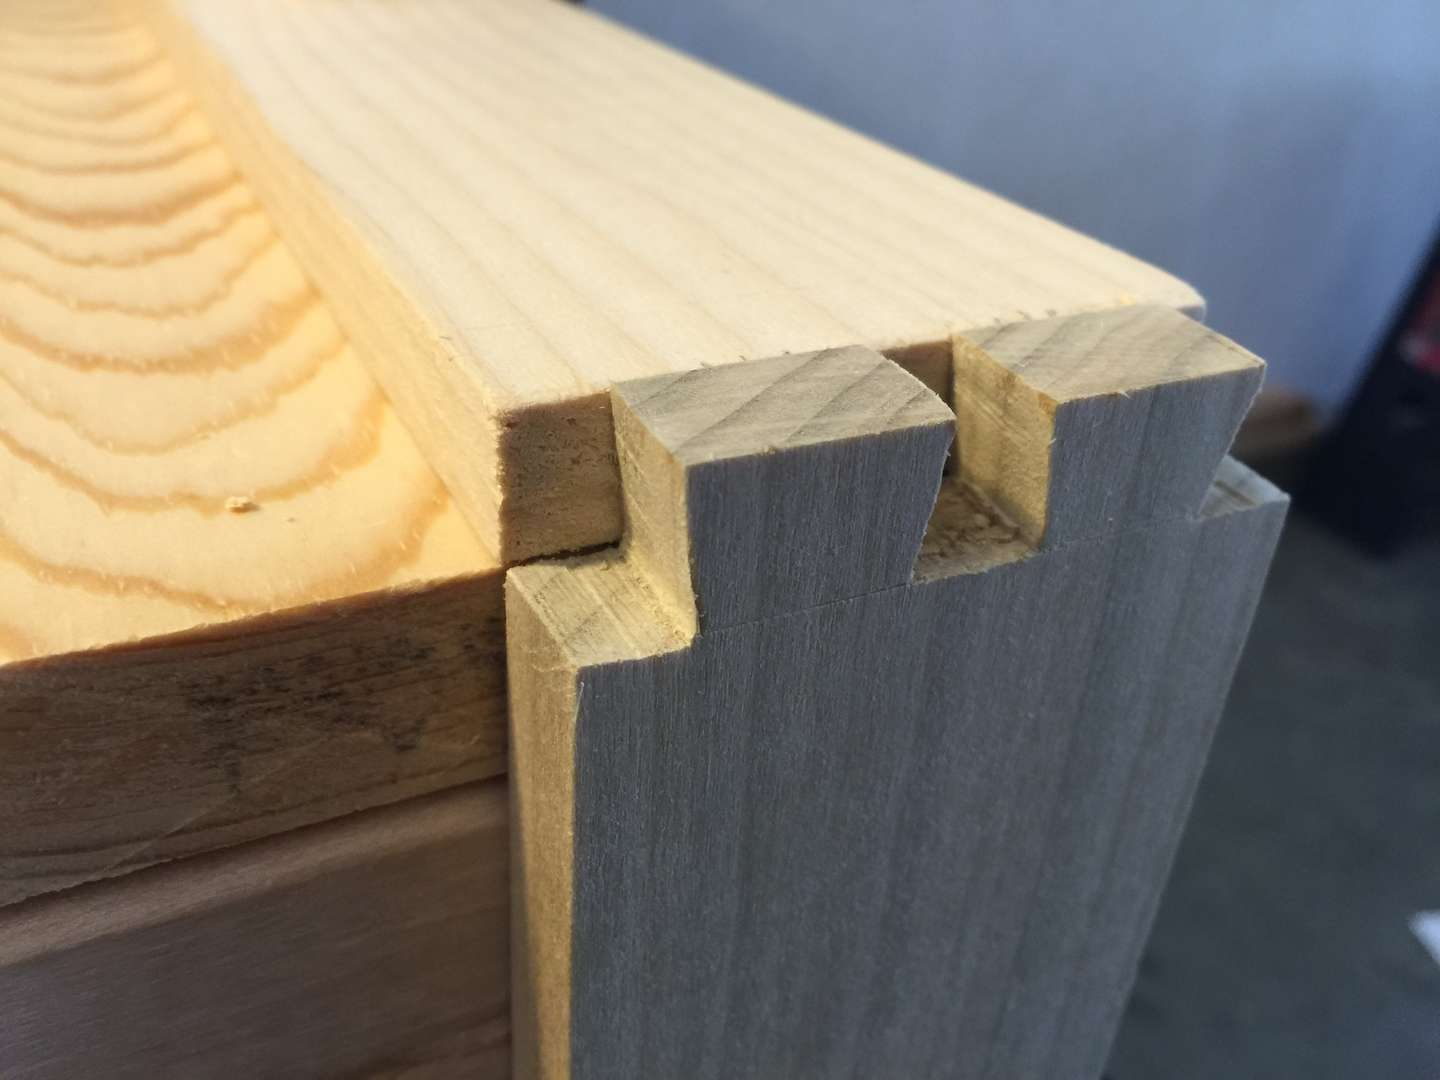 With your marking knife, trace the edges of your tail board onto the end of the pin board